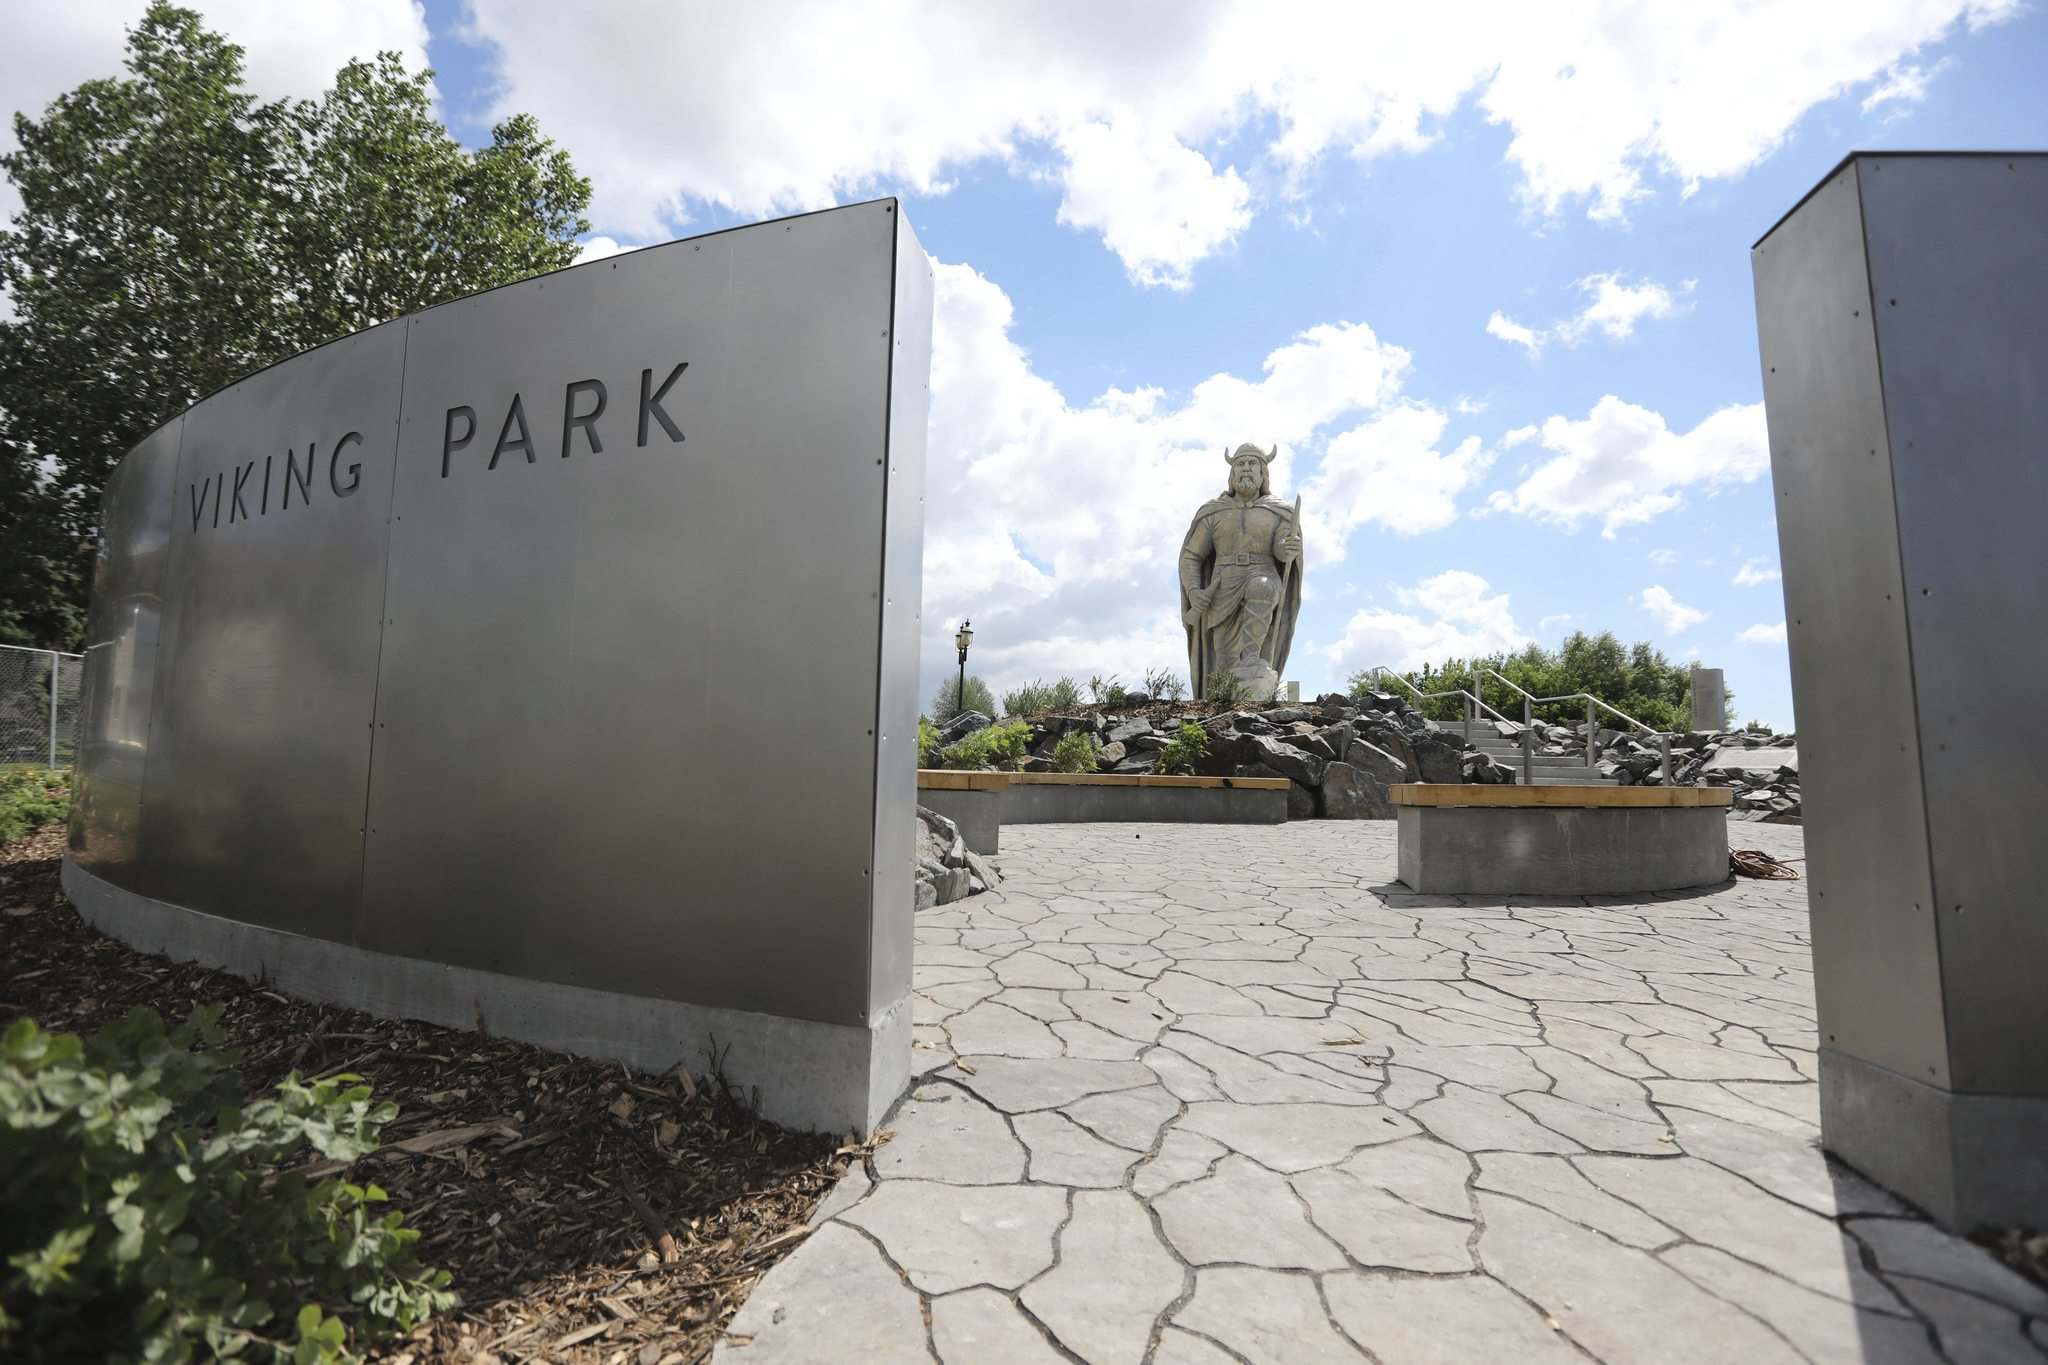 RUTH BONNEVILLE / WINNIPEG FREE PRESS</p><p>Gimli opens new space to house their giant statue of a Viking called Viking Park just prior to the Gimli Icelandic Festival this weekend.</p>